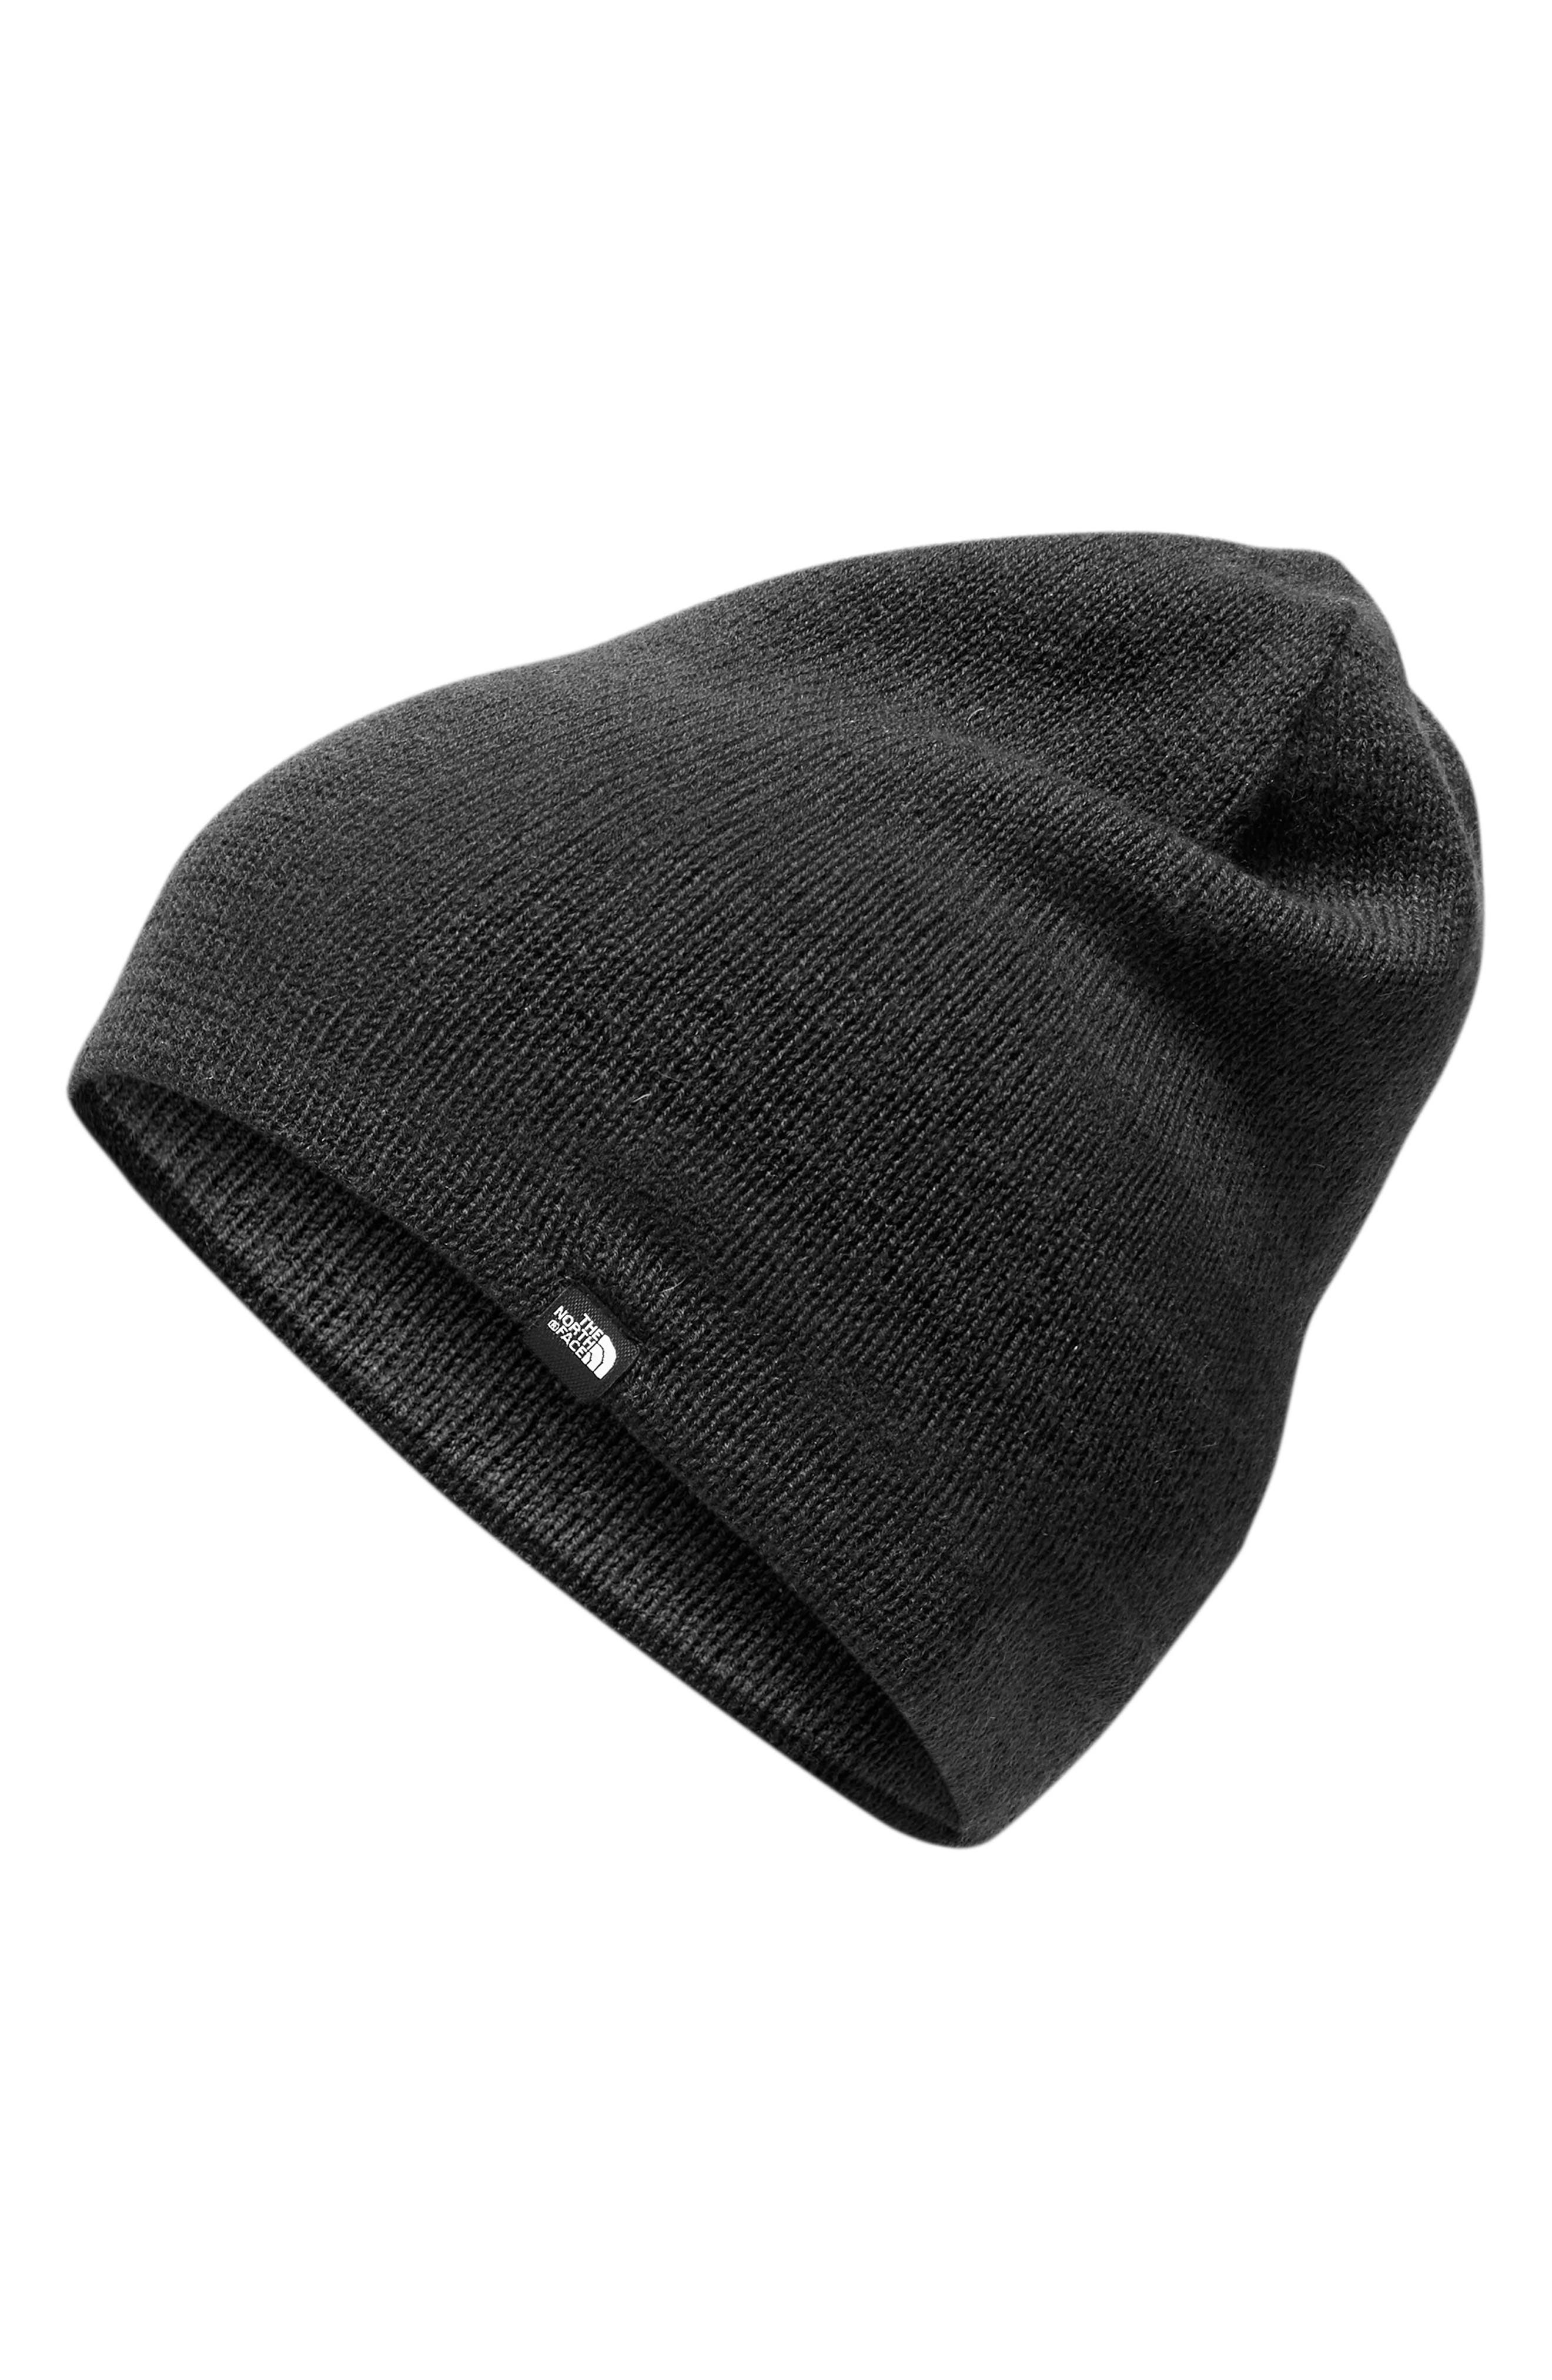 Reversible Merino Wool Beanie,                             Main thumbnail 1, color,                             BLACK/DARK GREY HEATHER